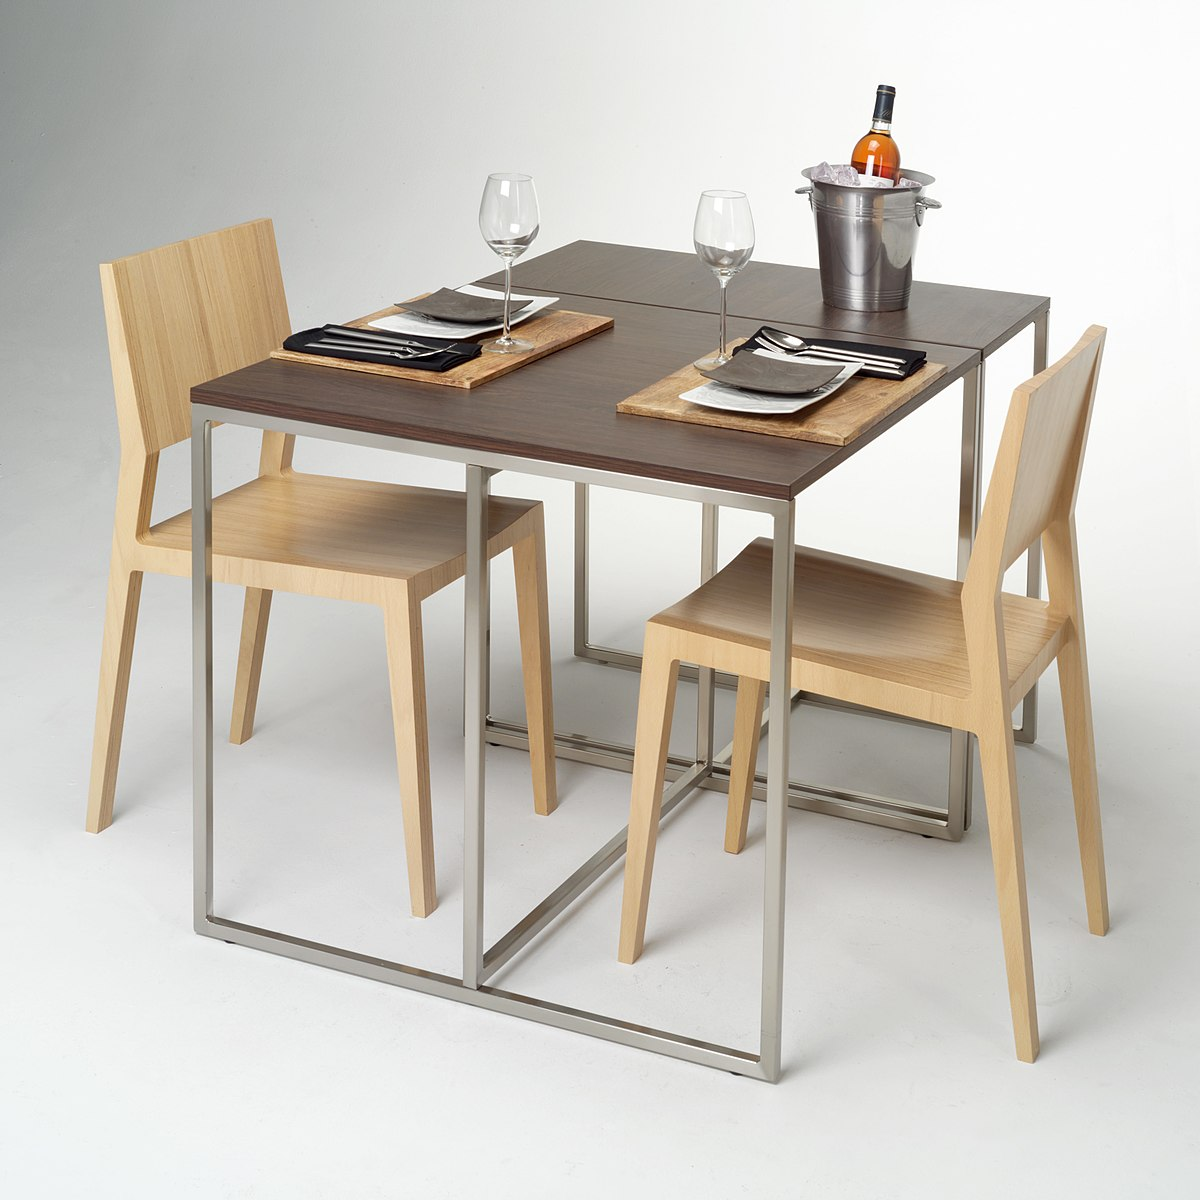 Furniture 4 person kitchen table